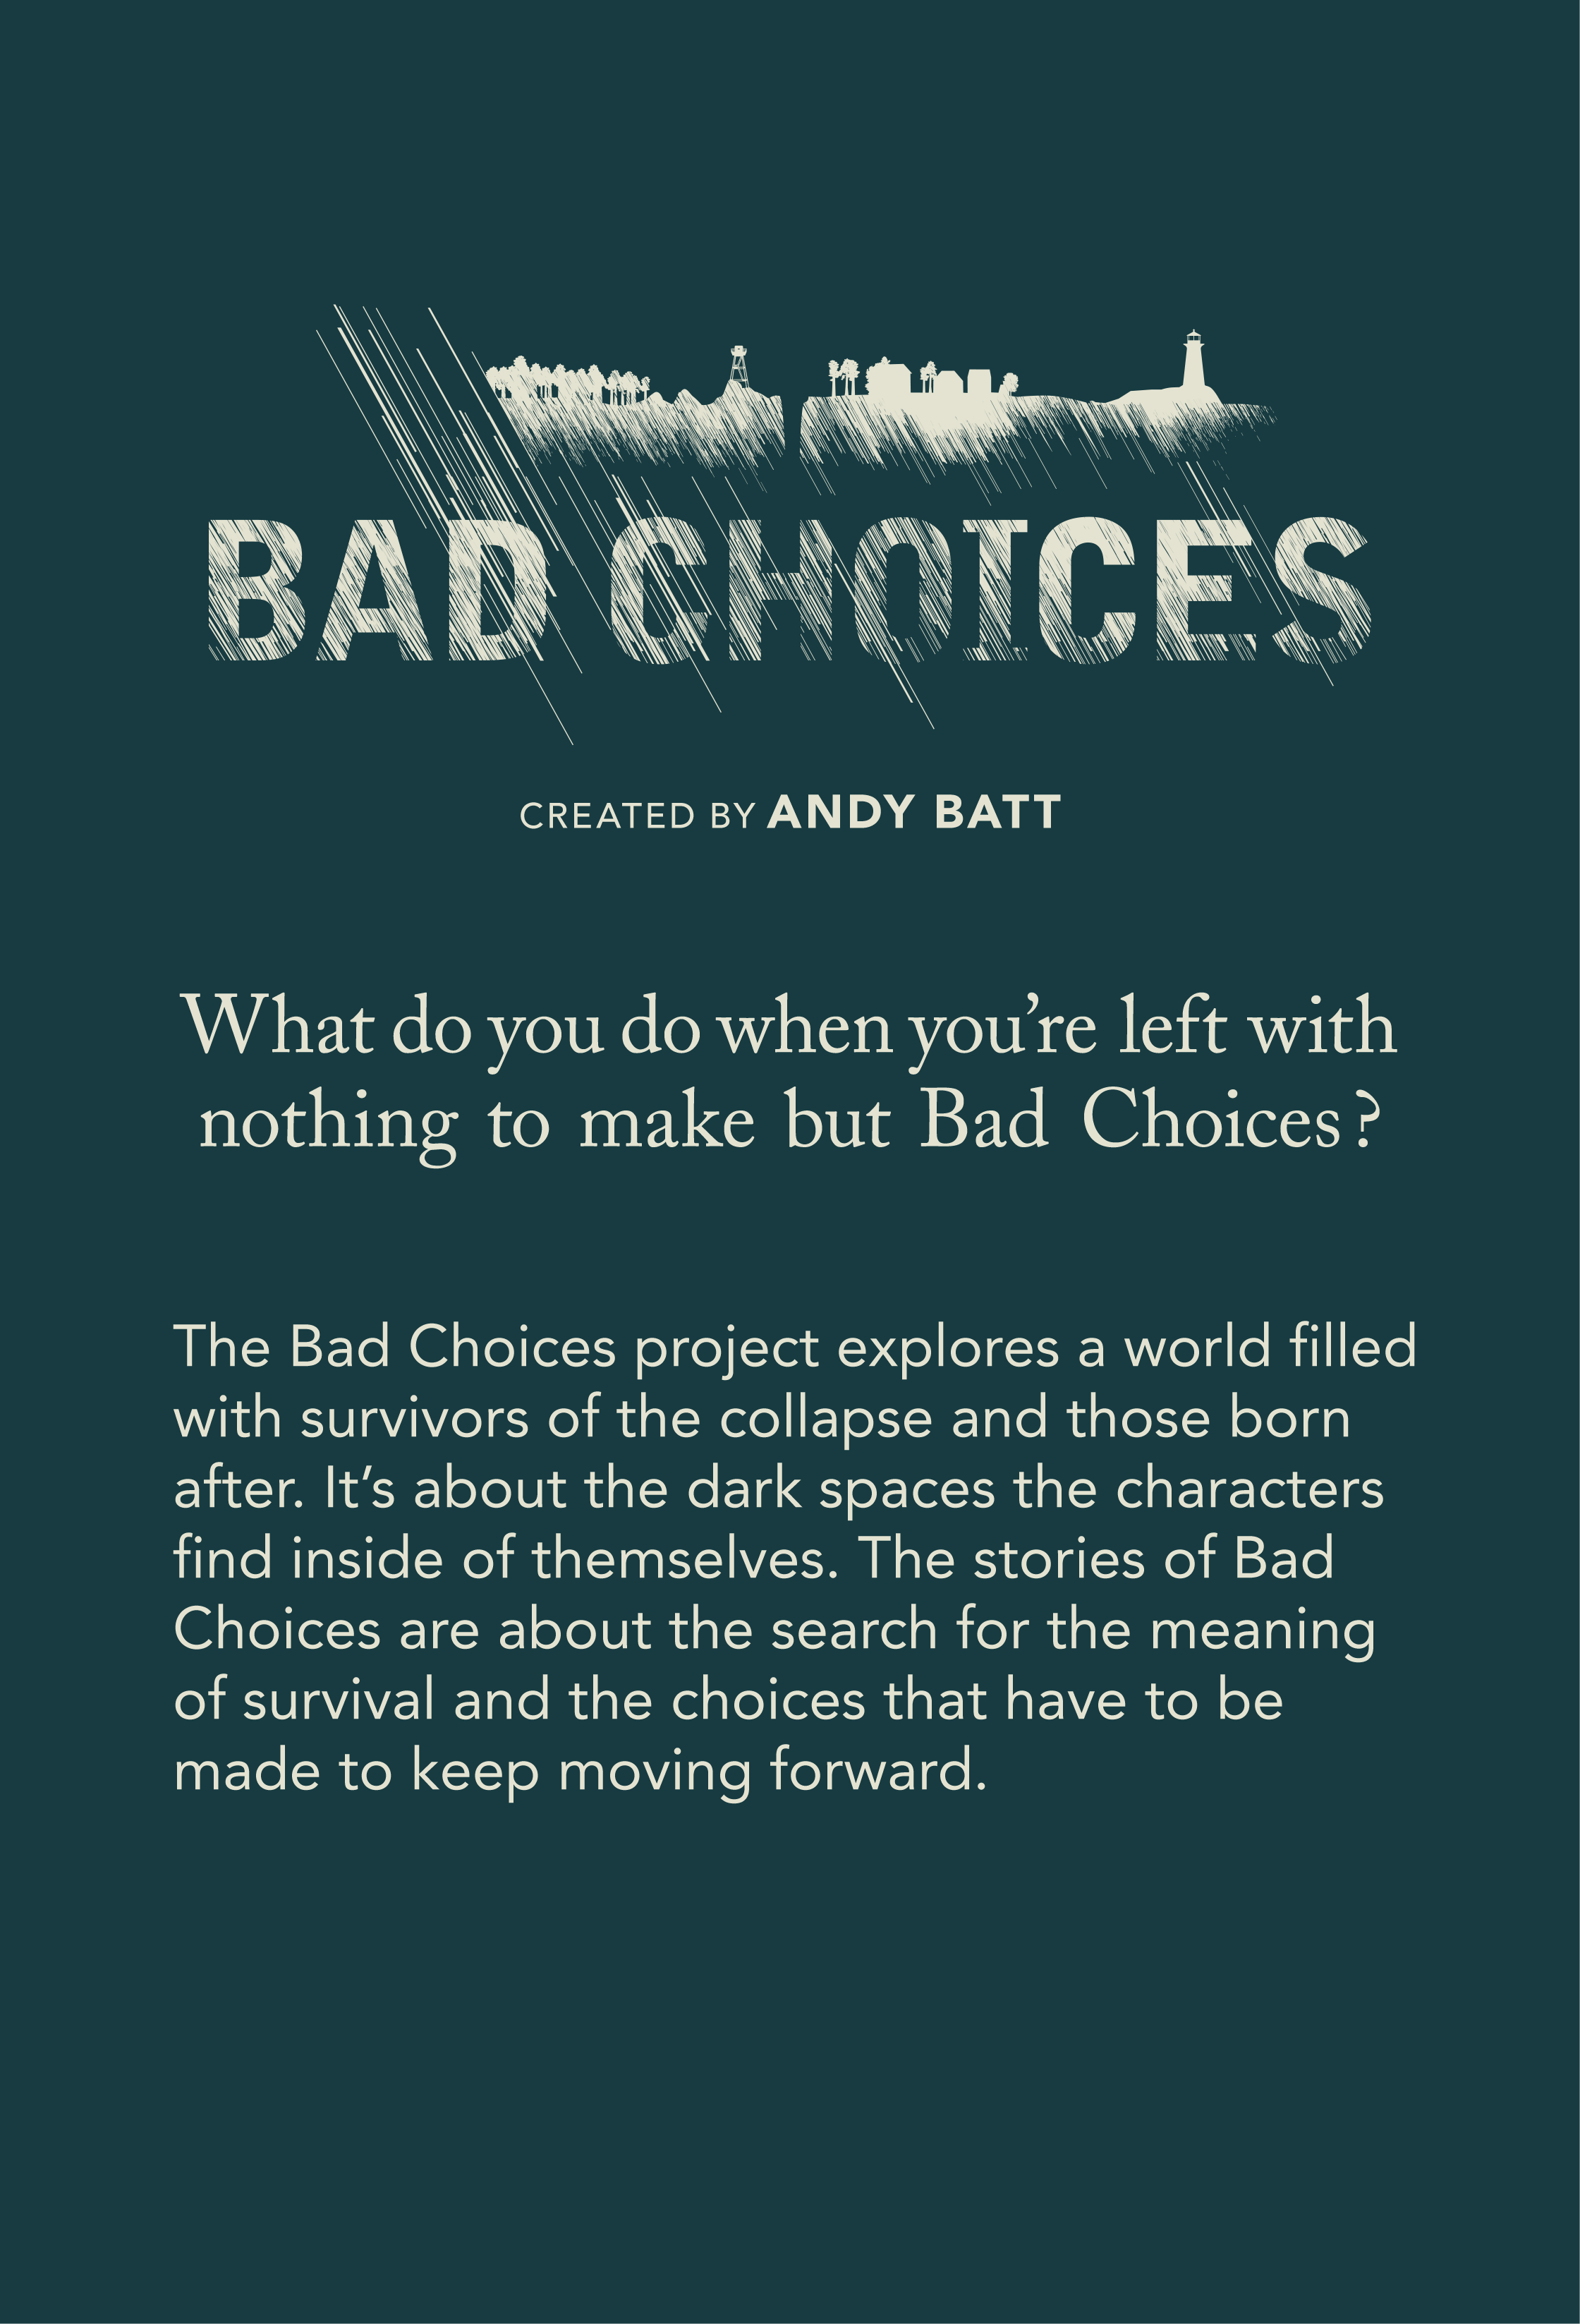 BadChoices_PromoCardBack_CLR-OldClay_web_image_vert